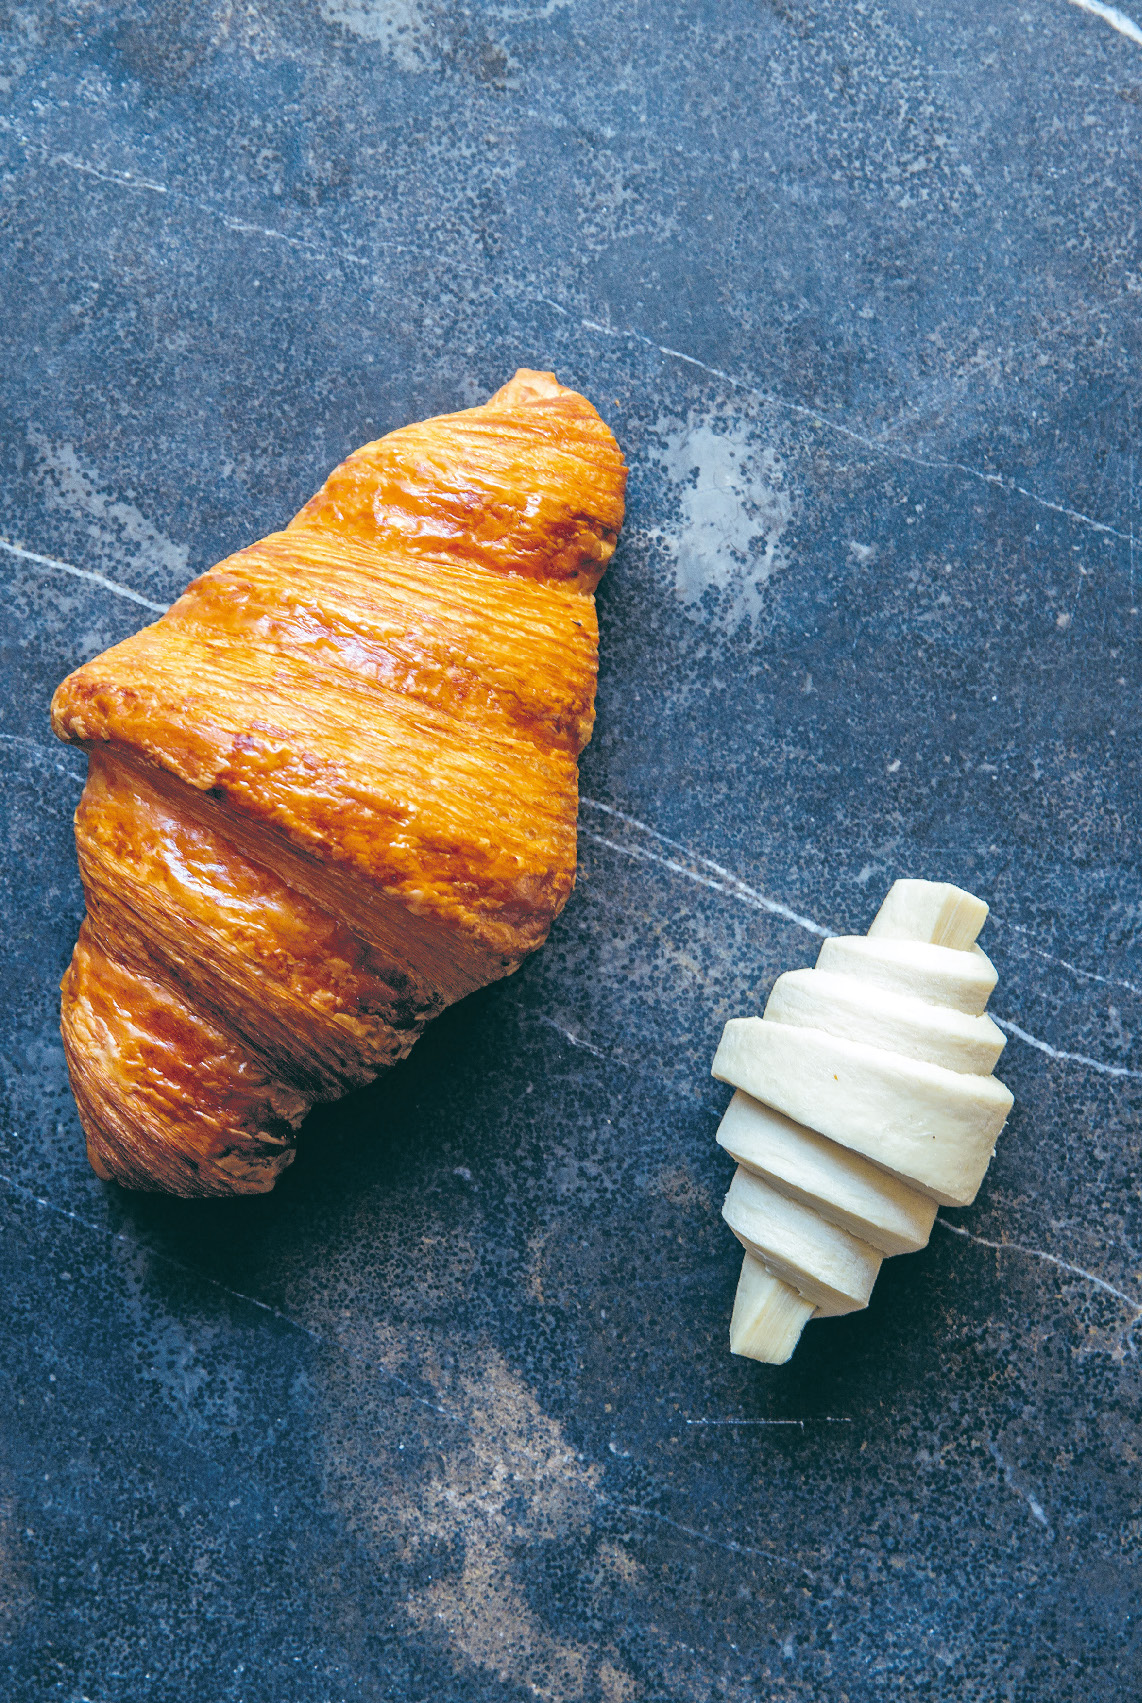 Croissant pastry